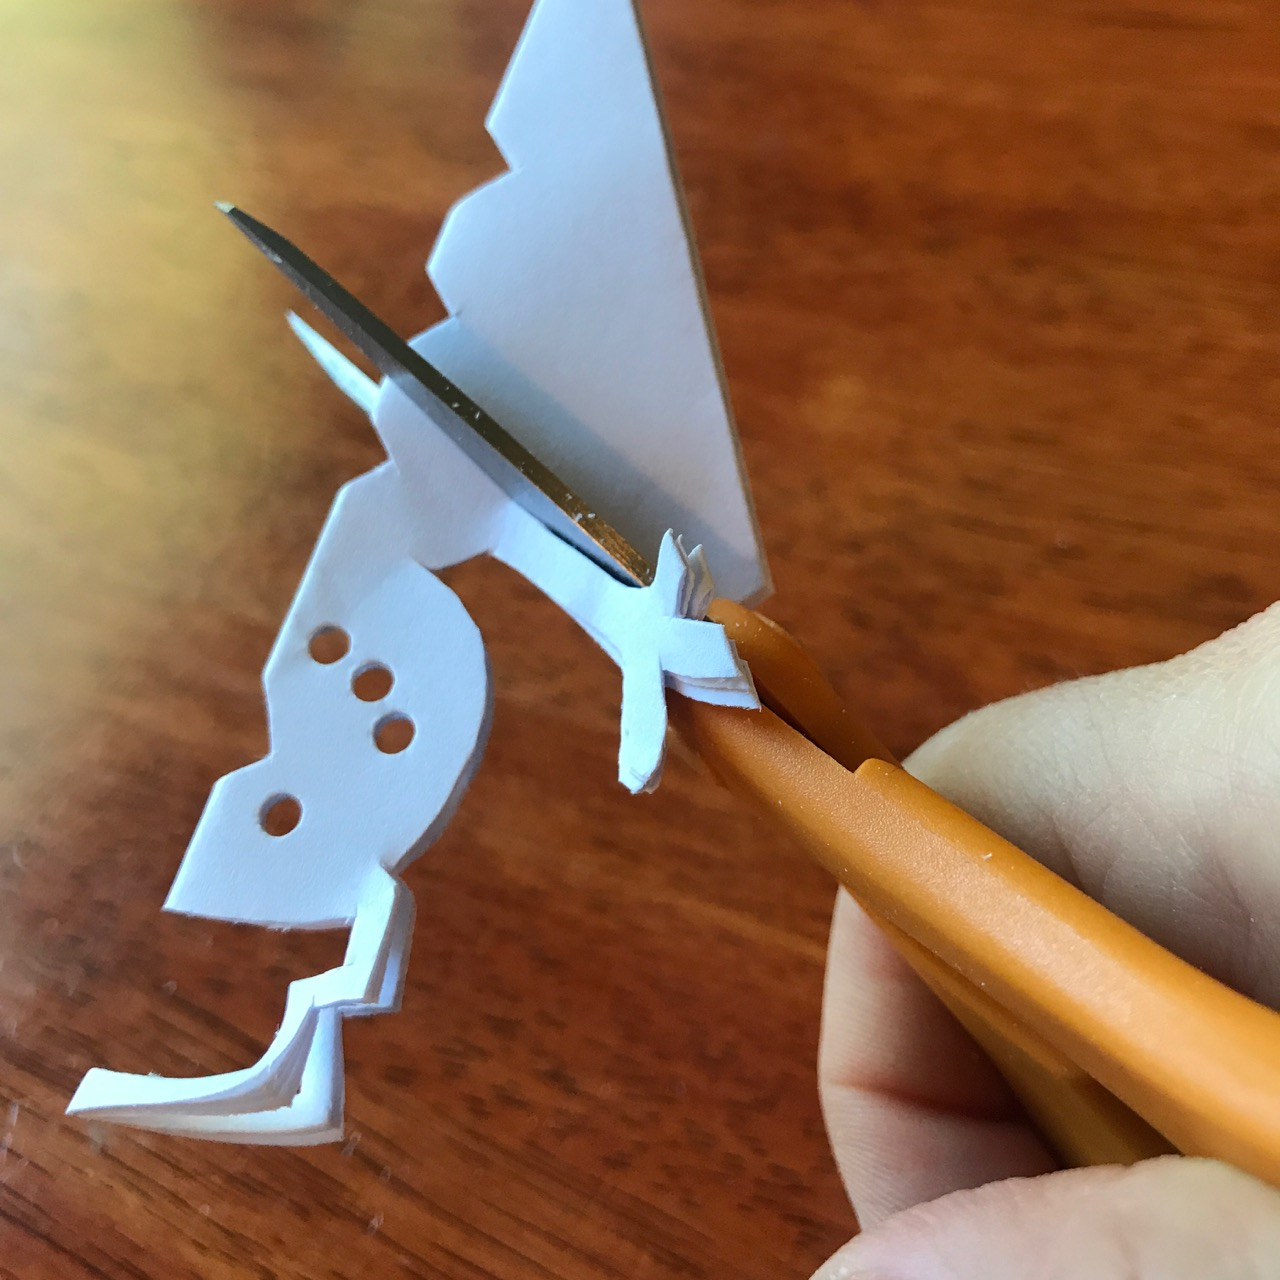 How to cut a snowman paper snowflake